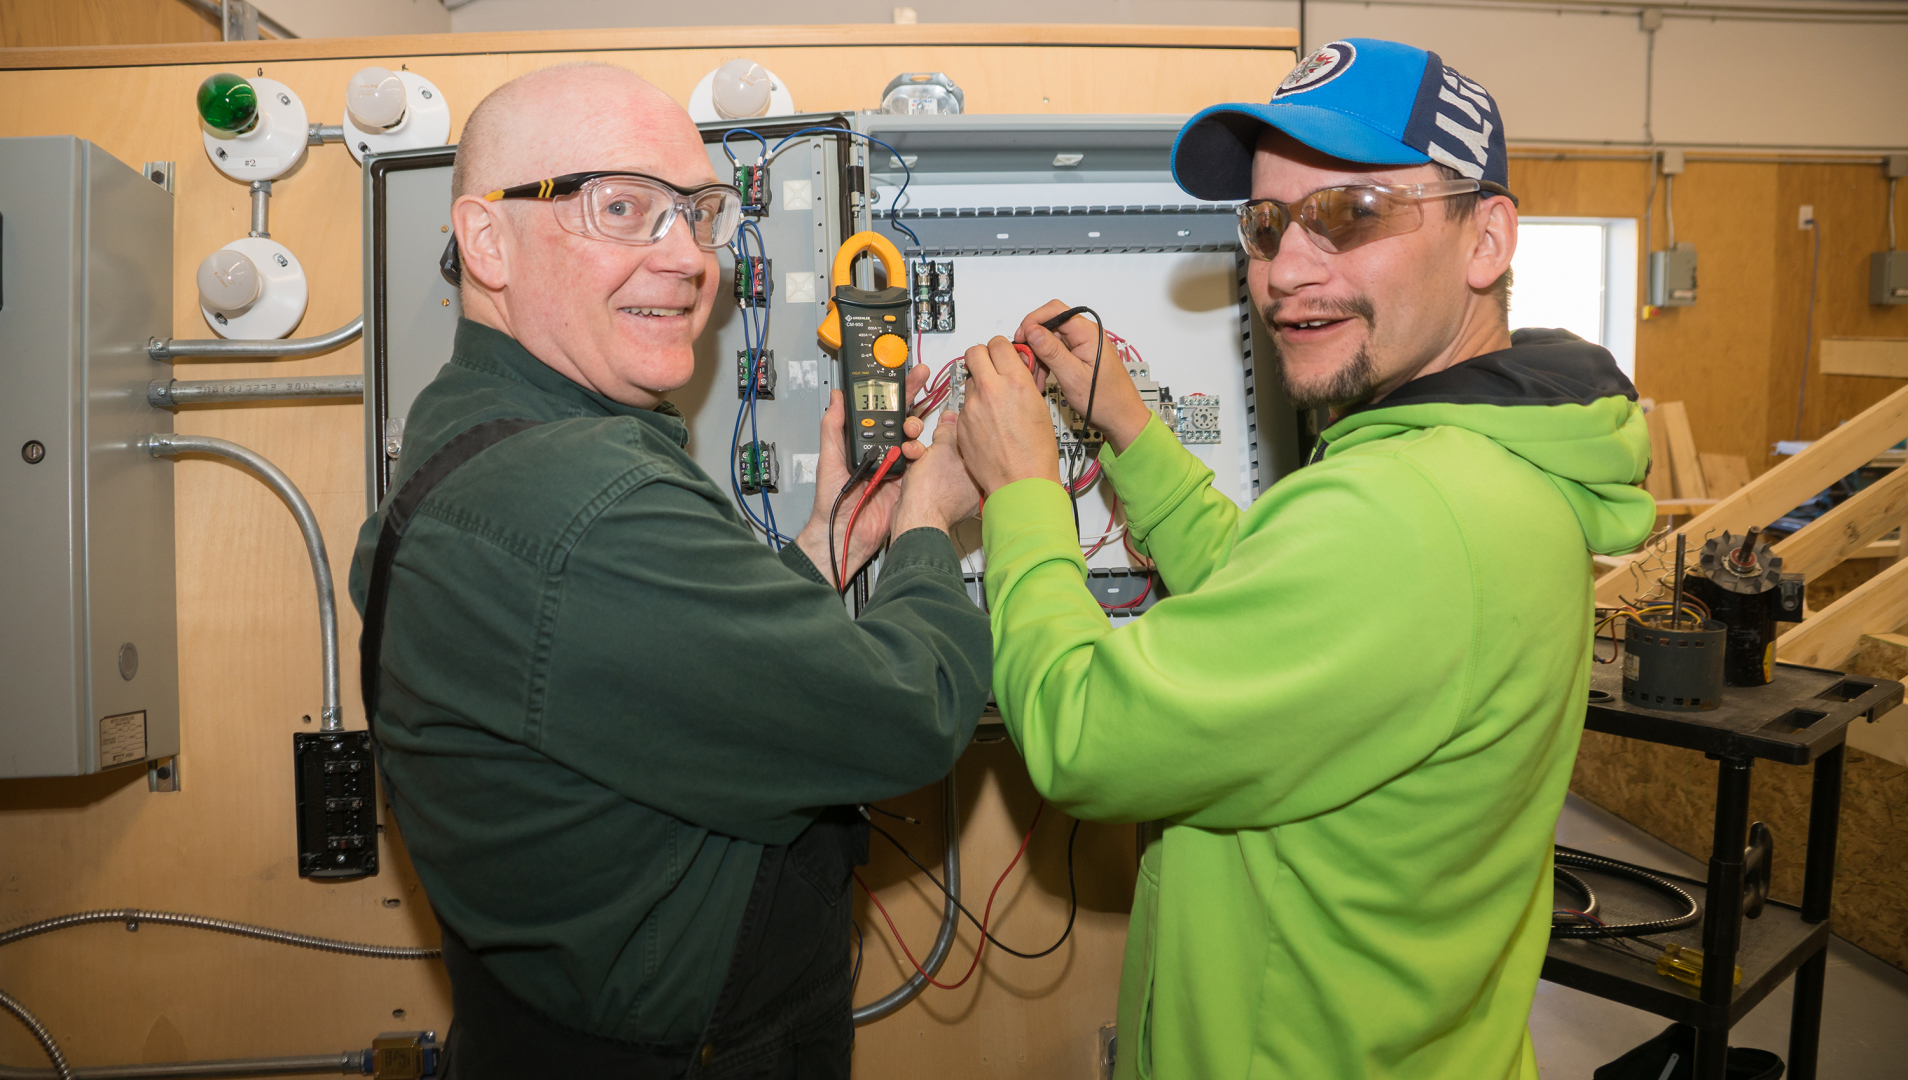 Electrical student and instructor pose while working on wiring.